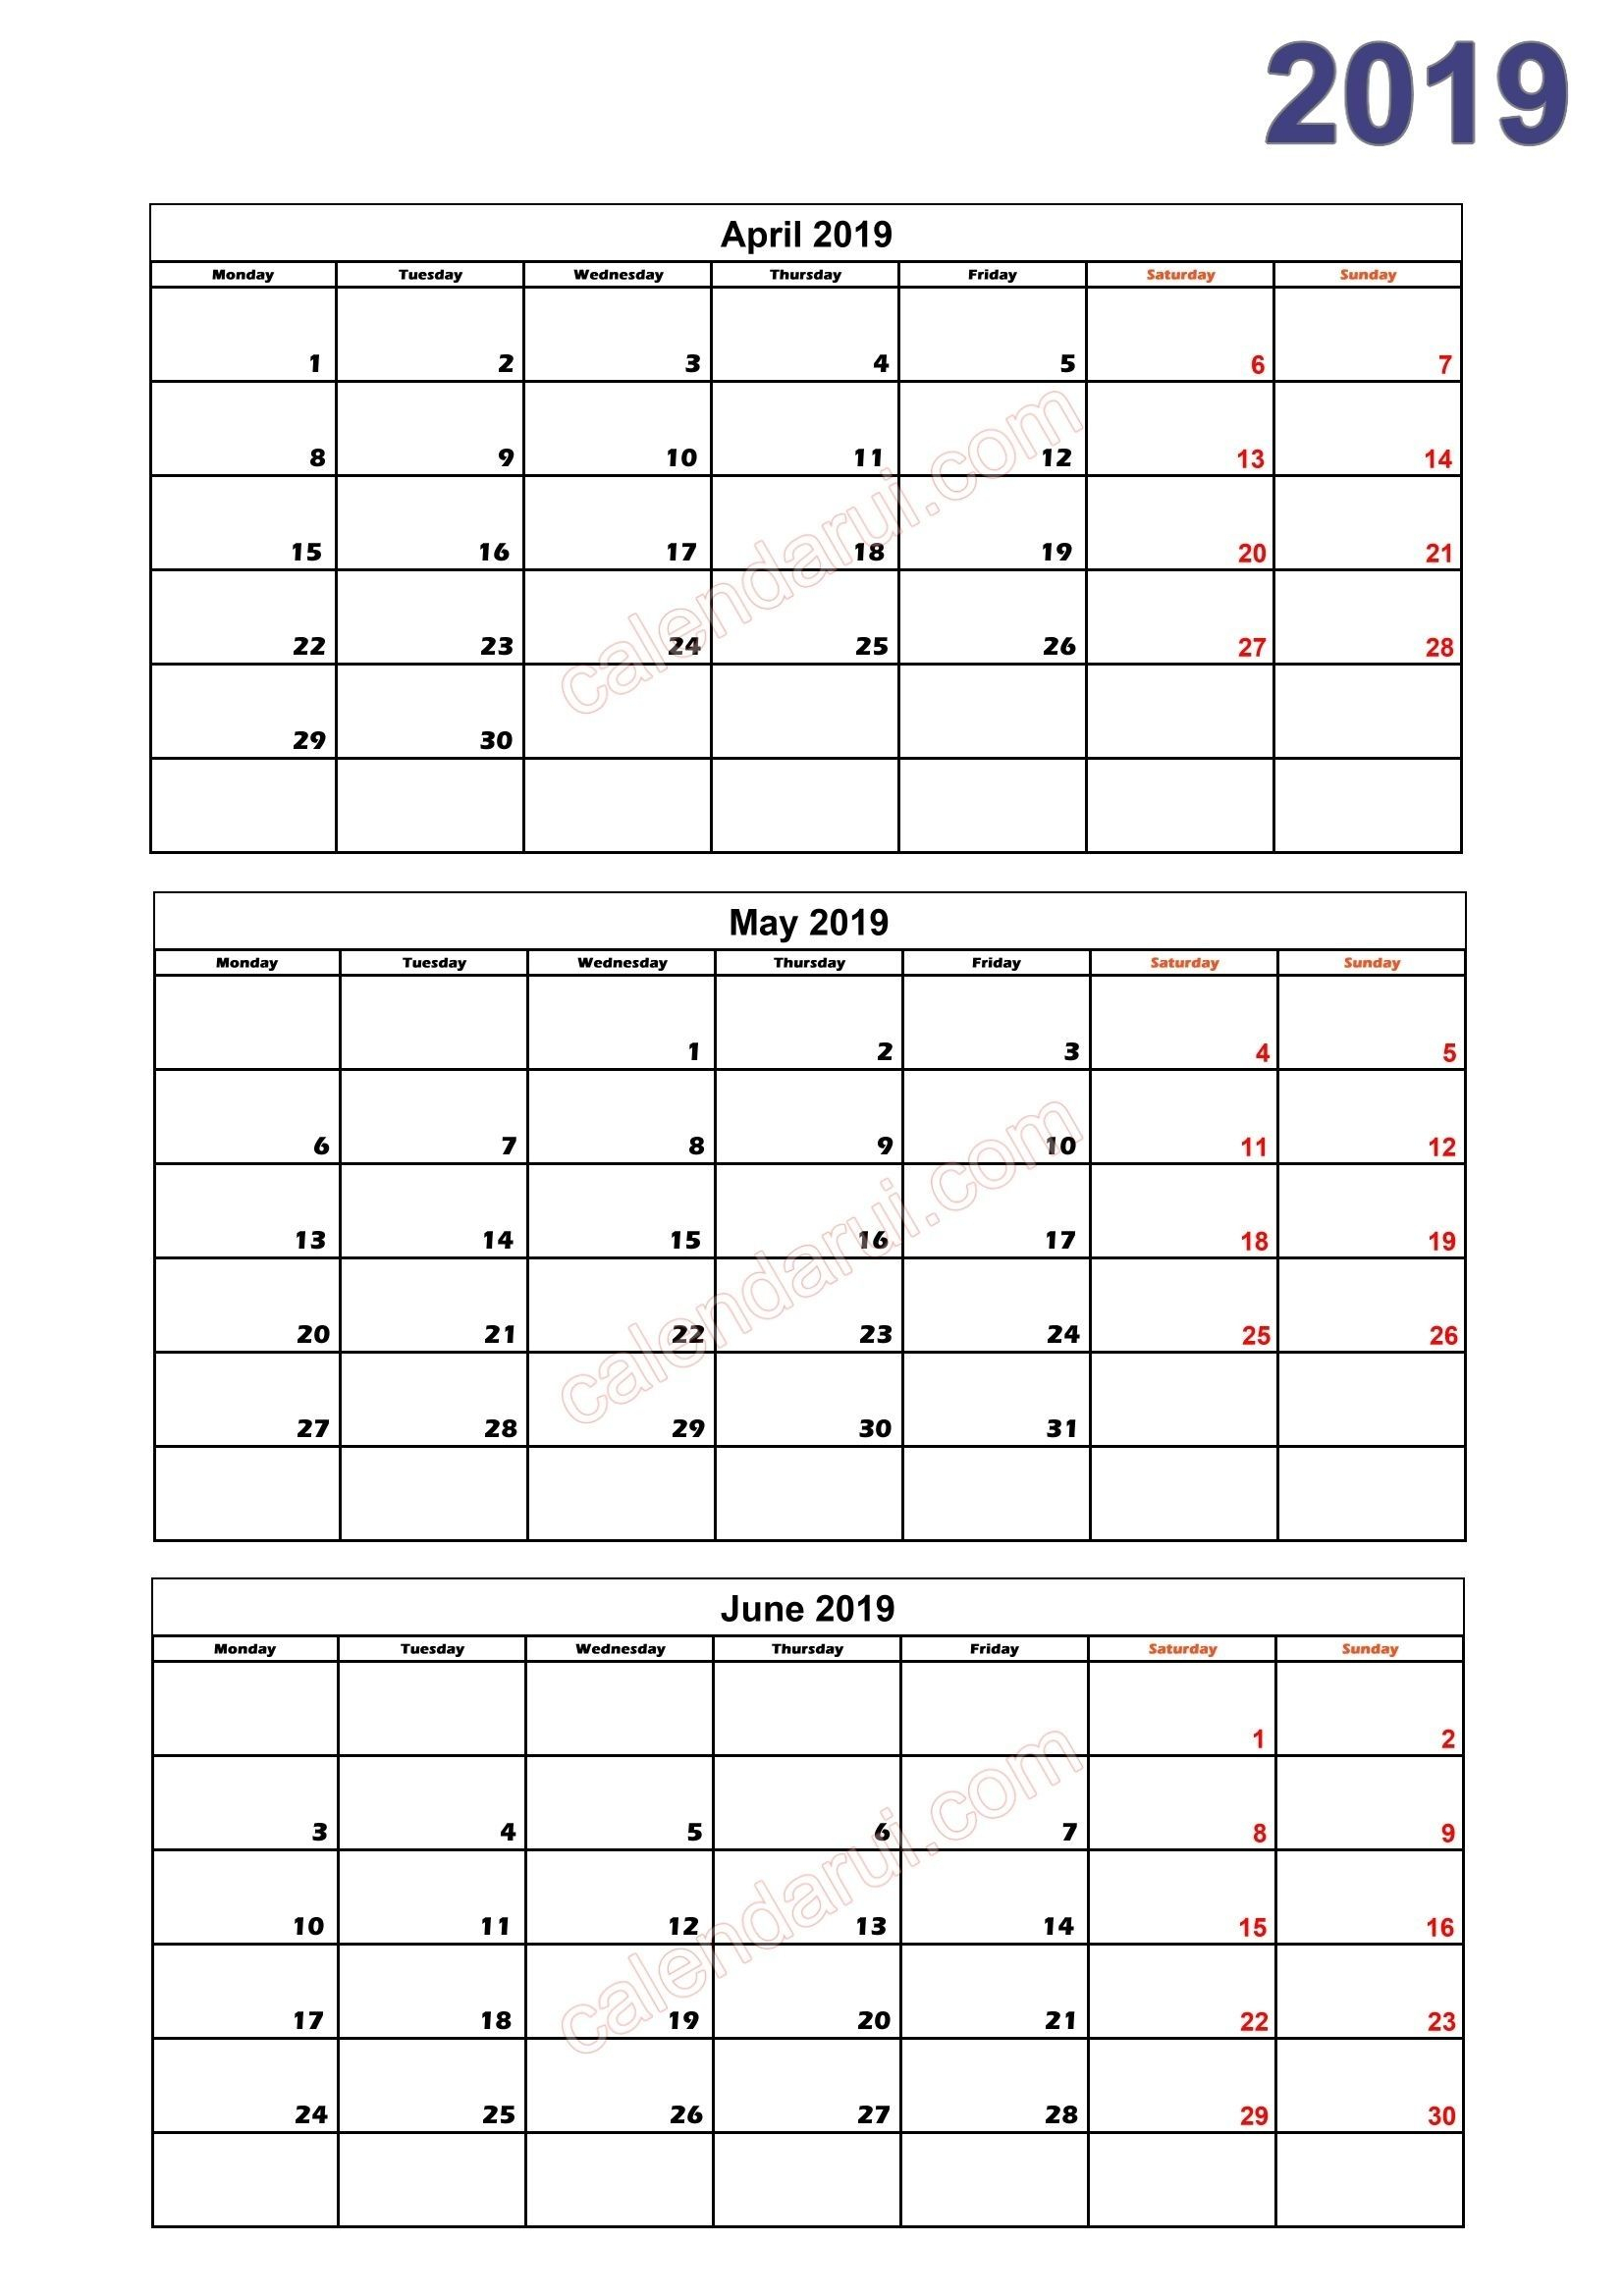 Free Printable Calendar Quarterly In 2020 | Calendar 2019